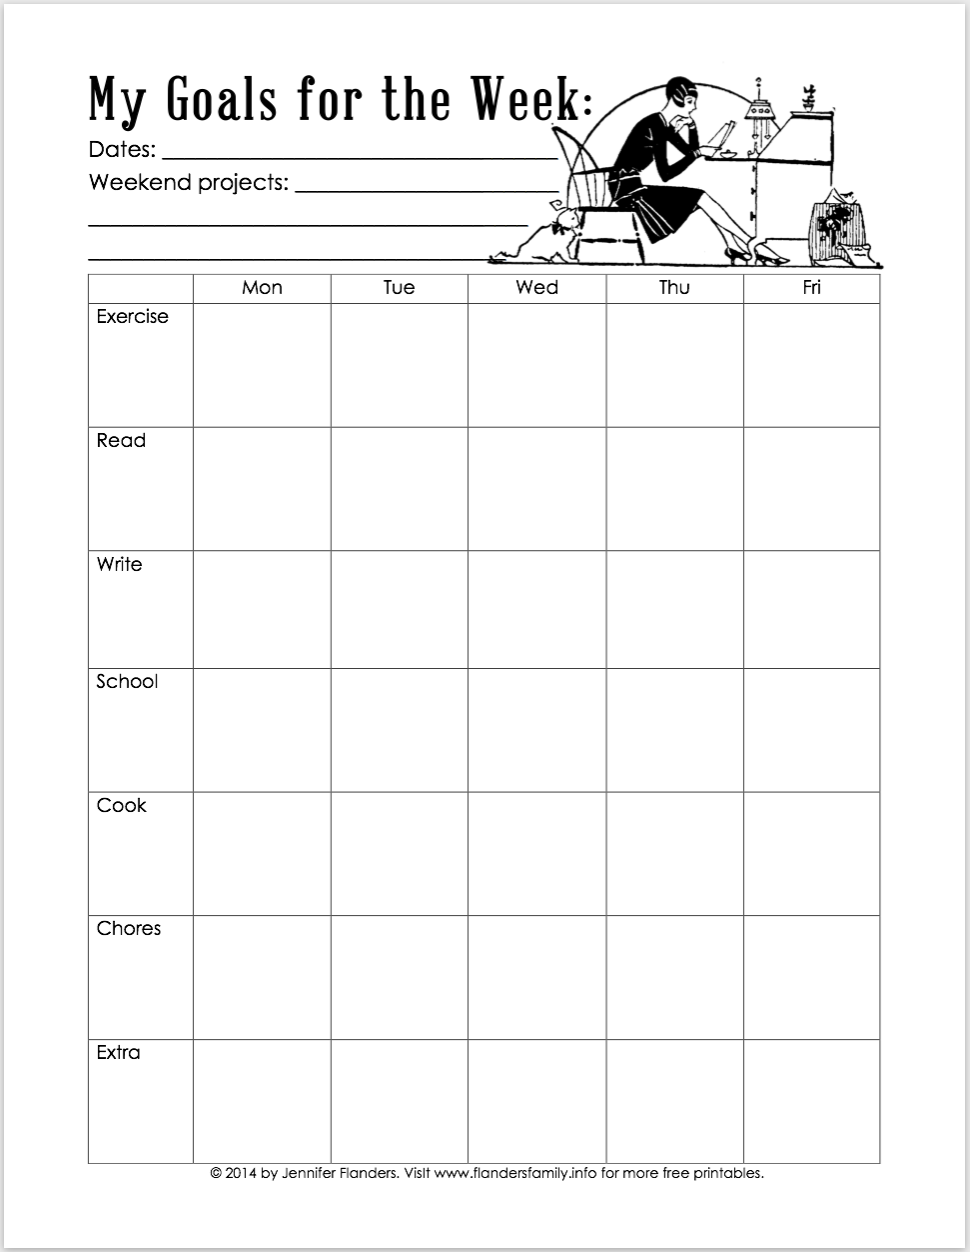 My Goals for the Week - Free Printable